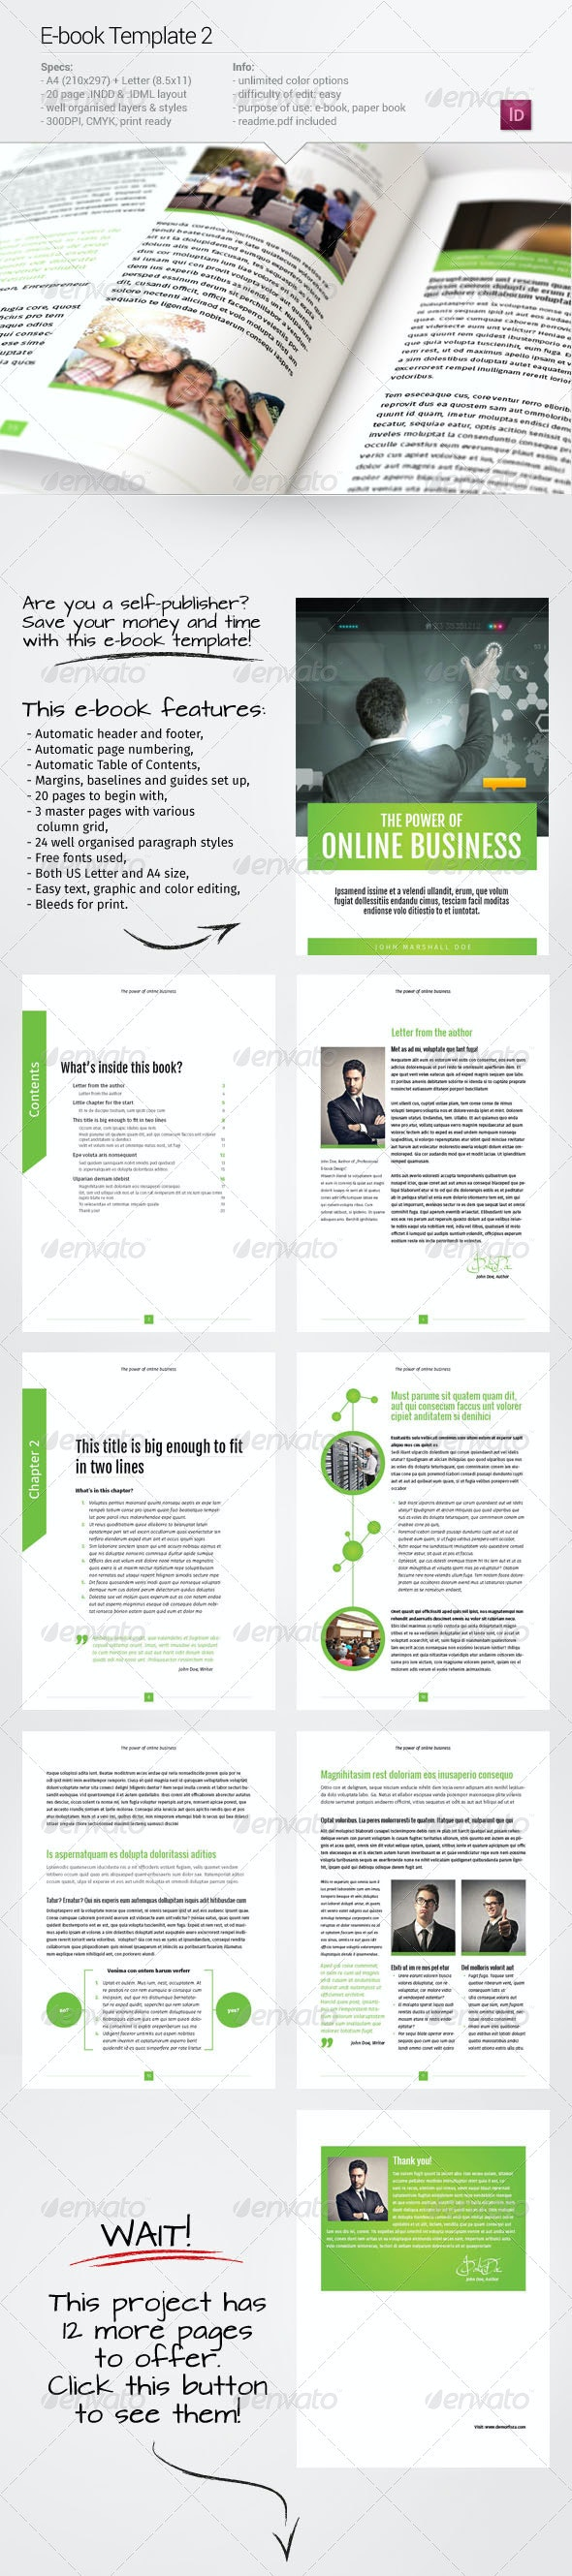 E-book Template 2 - Digital Books ePublishing